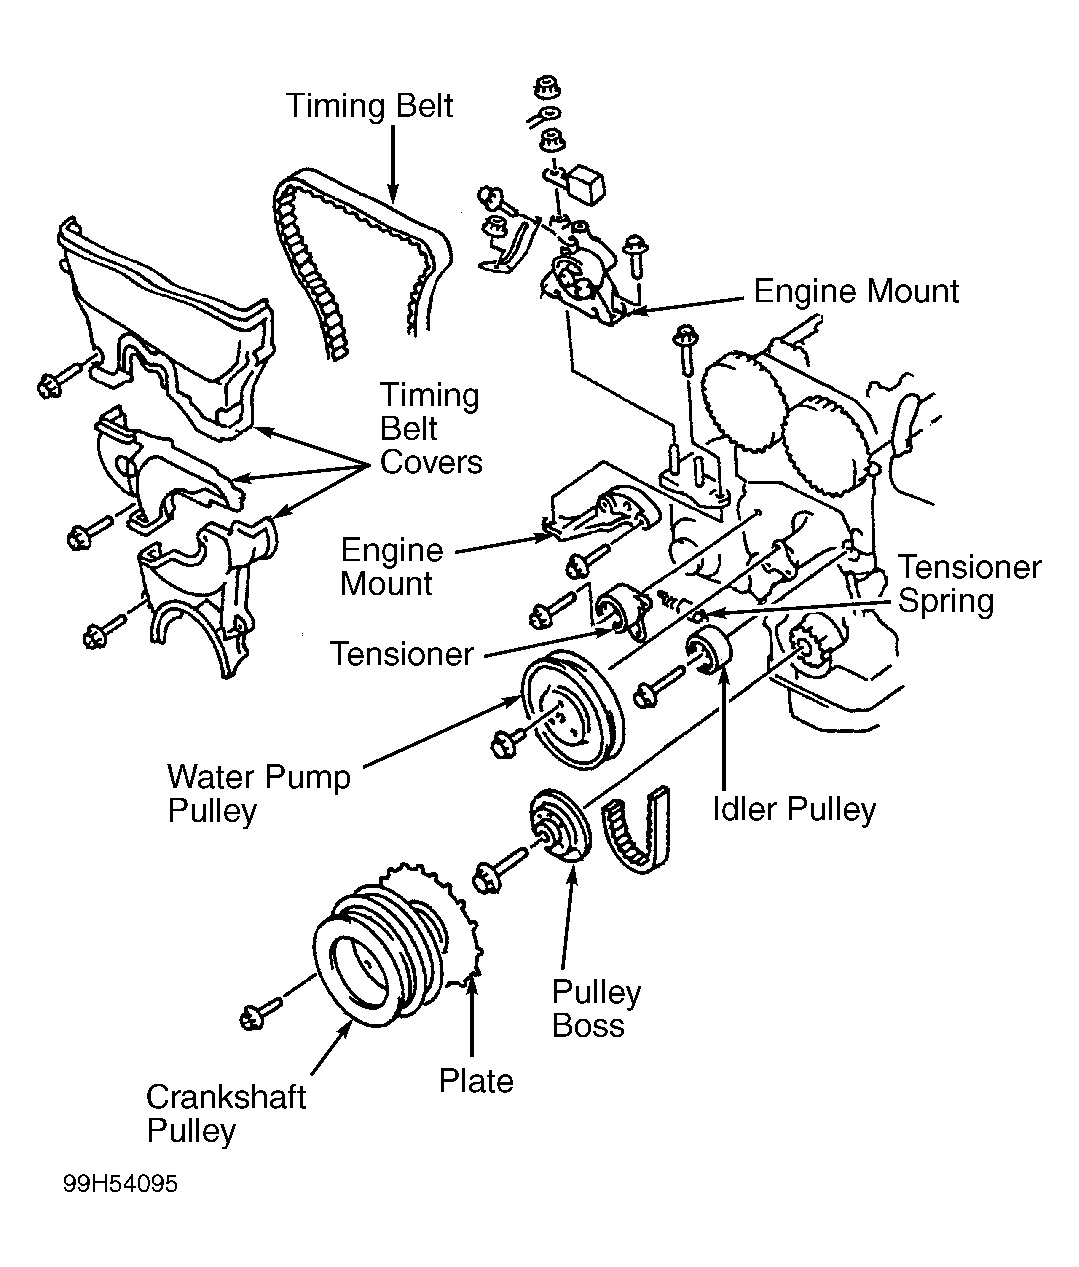 2001 Mazda Protege Engine Diagram Wiring Library 2002 Radio Thumb